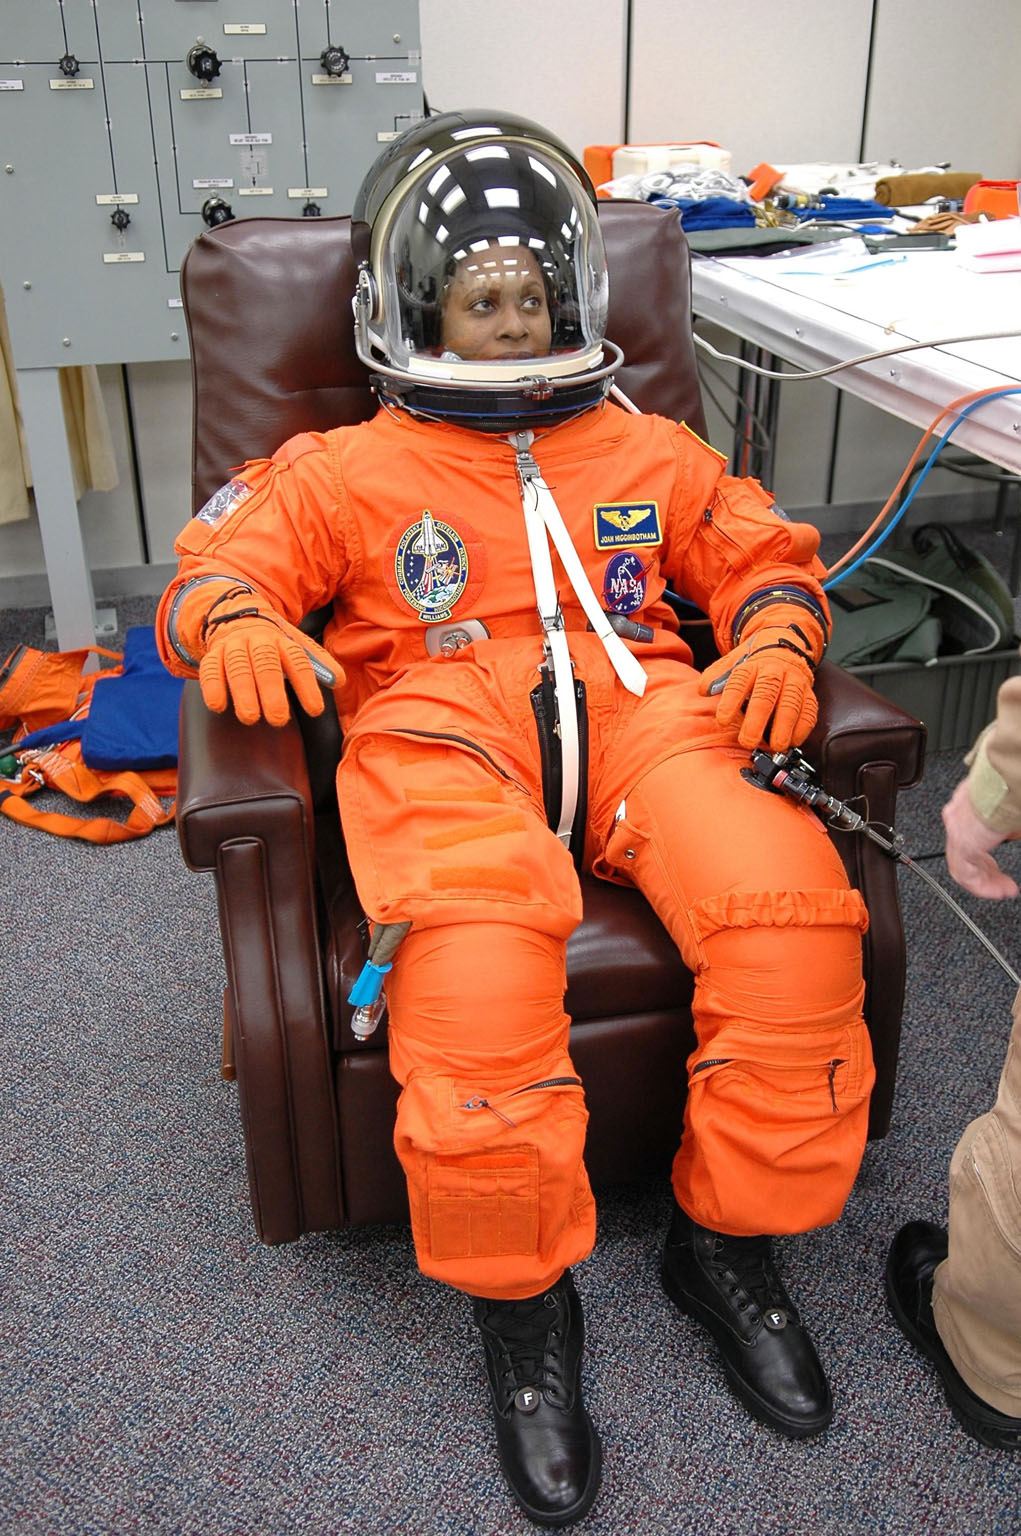 KENNEDY SPACE CENTER, FLA. -- STS-116 Mission Specialist Joan Higginbotham has donned her complete launch suit to check the fit, part of the prelaunch preparations during terminal countdown demonstration test (TCDT) activities. The mission crew is at KSC for the TCDT, which includes a simulated launch countdown. The STS-116 mission is No. 20 to the International Space Station and construction flight 12A.1. The mission payload is the SPACEHAB module, the P5 integrated truss structure and other key components. Launch is scheduled for no earlier than Dec. 7. Photo credit: NASA/Kim Shiflett